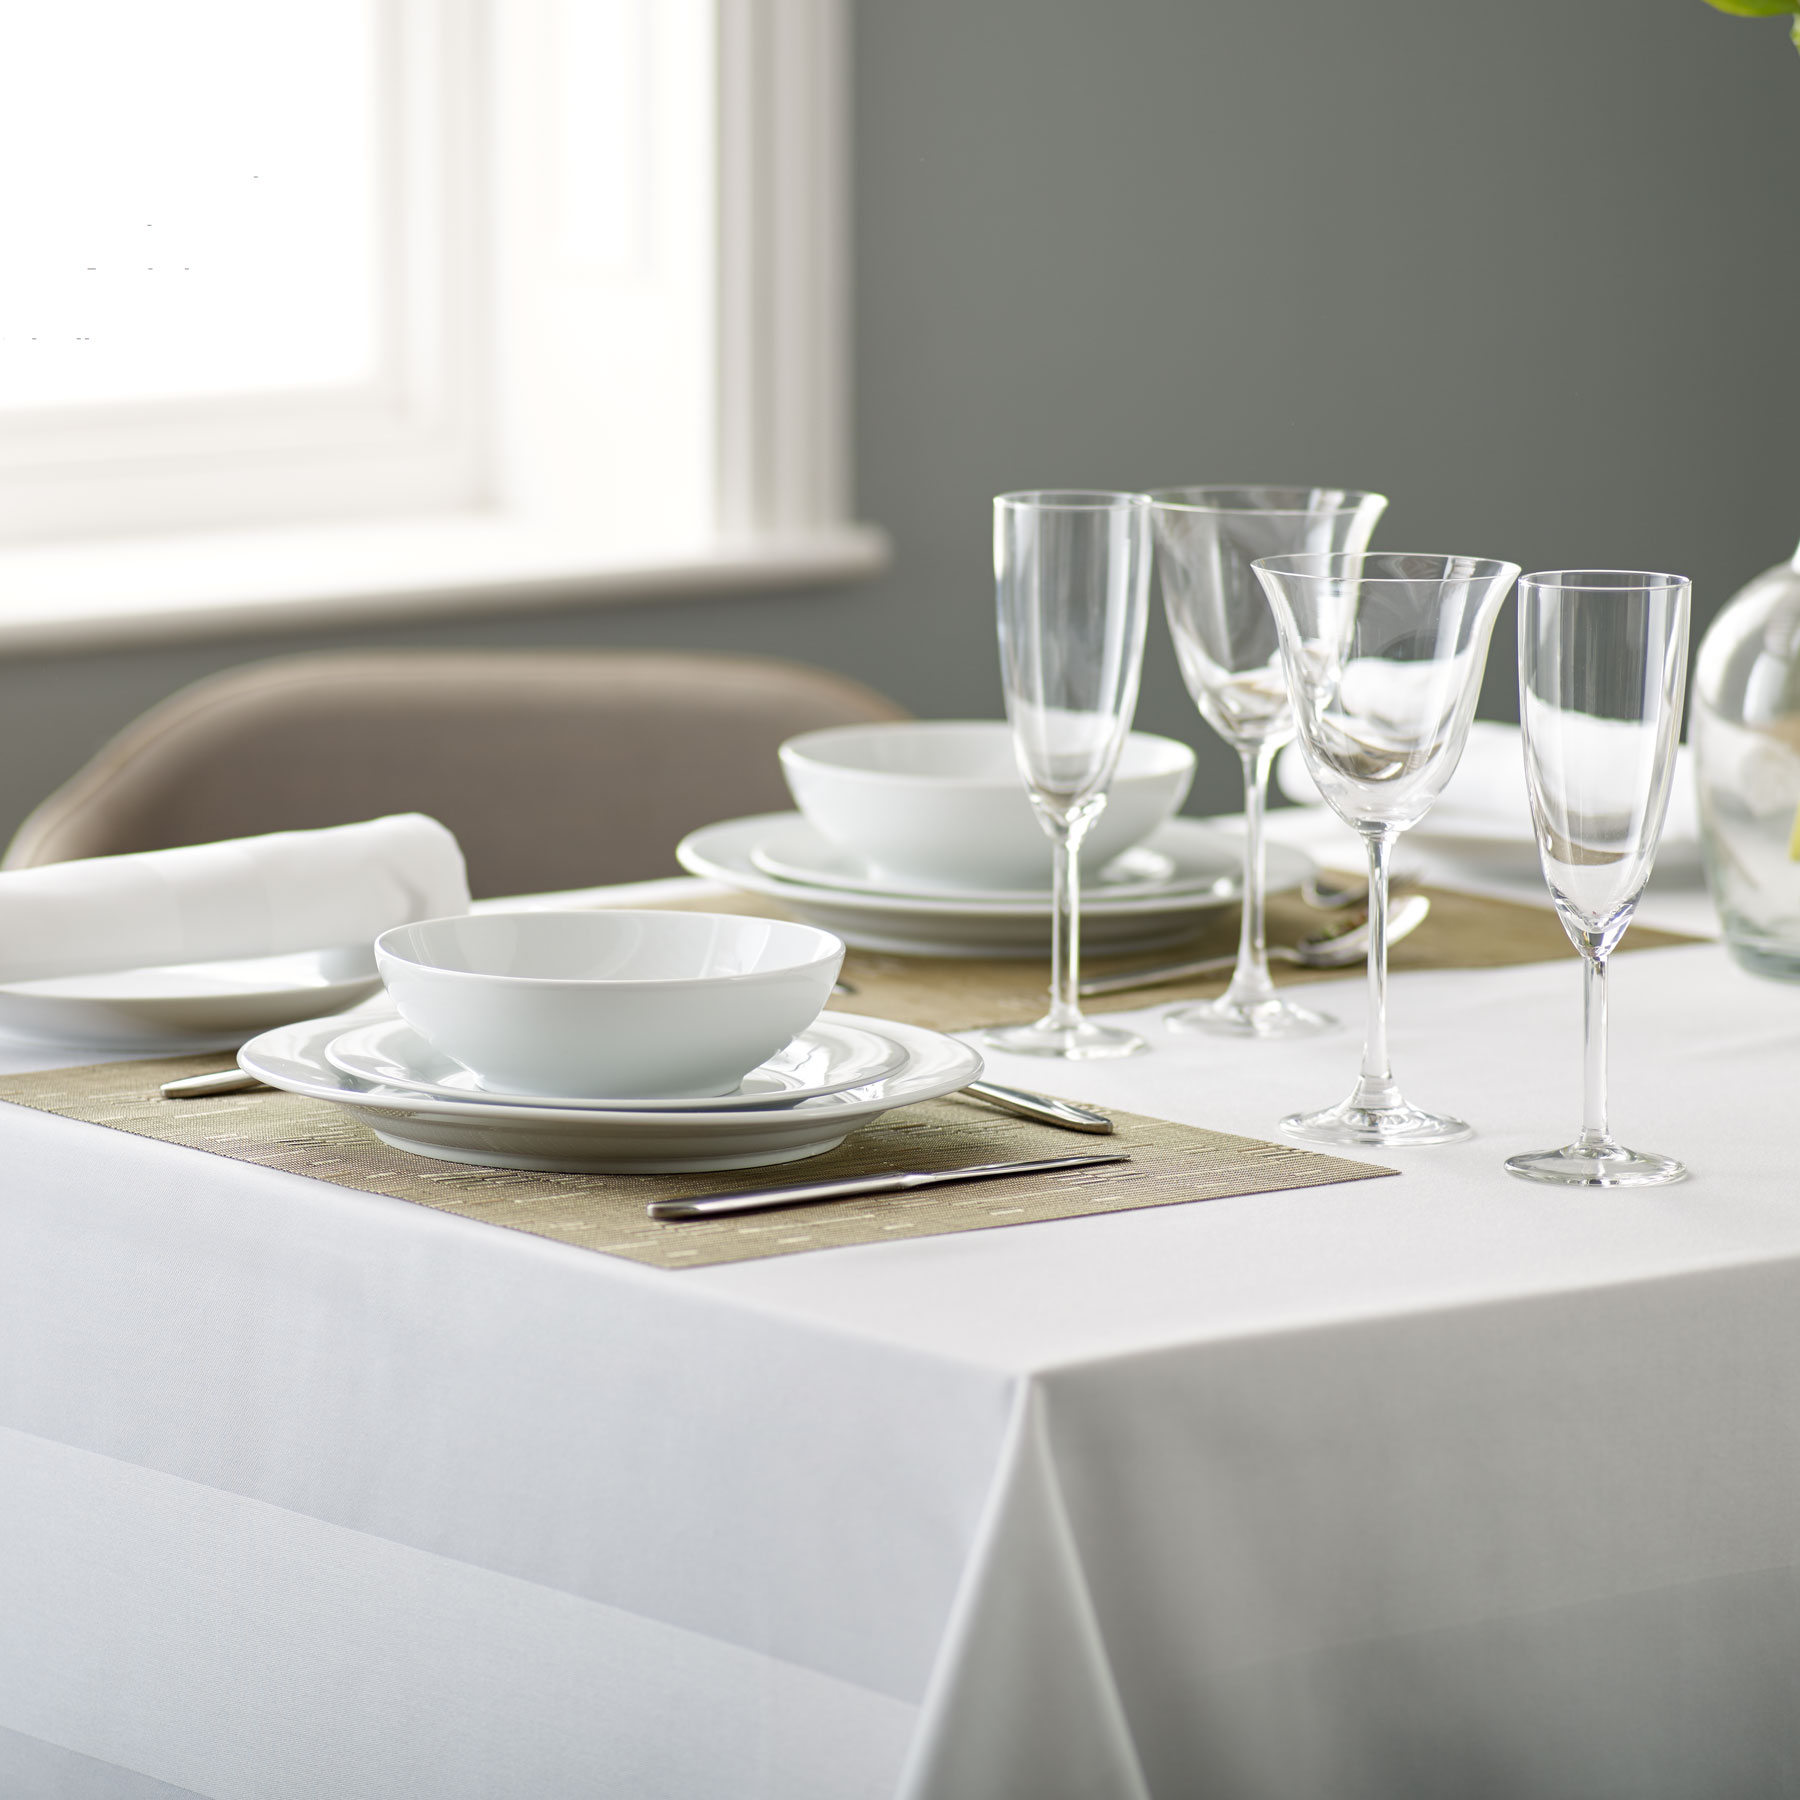 Ivyleaf table linen set